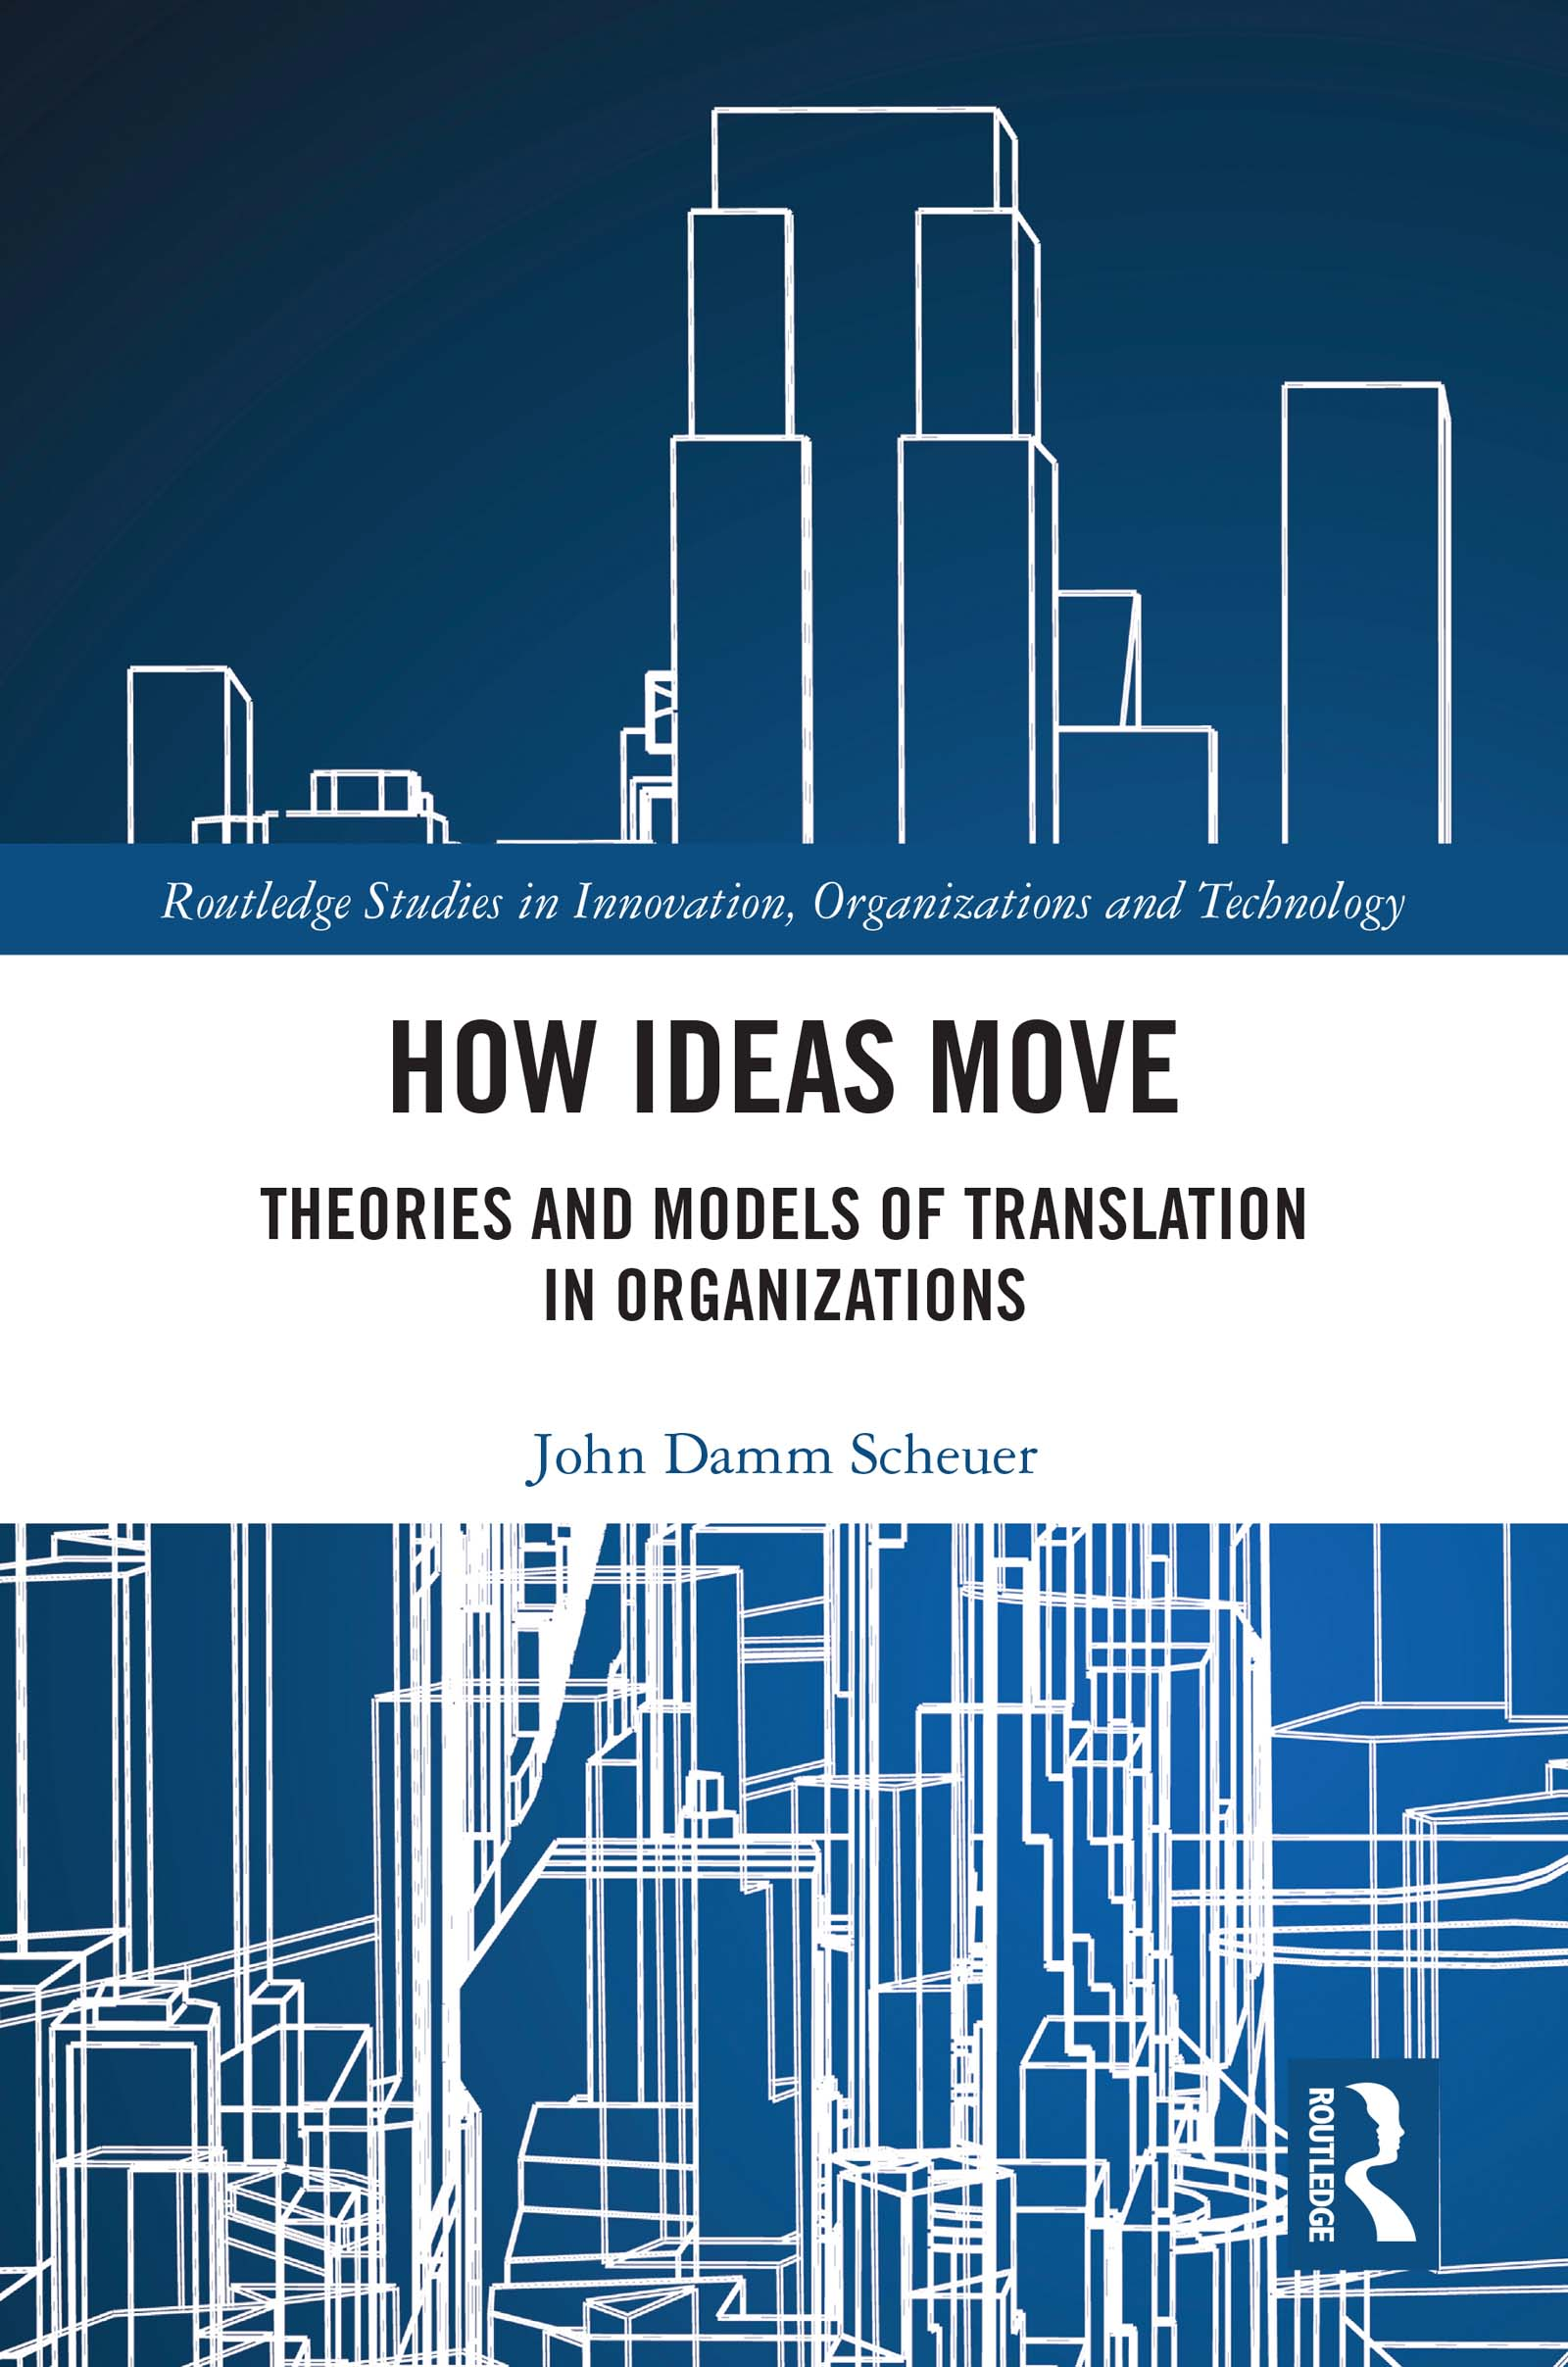 Scientific, humanistic, actualist and design approaches to the study of movement of ideas